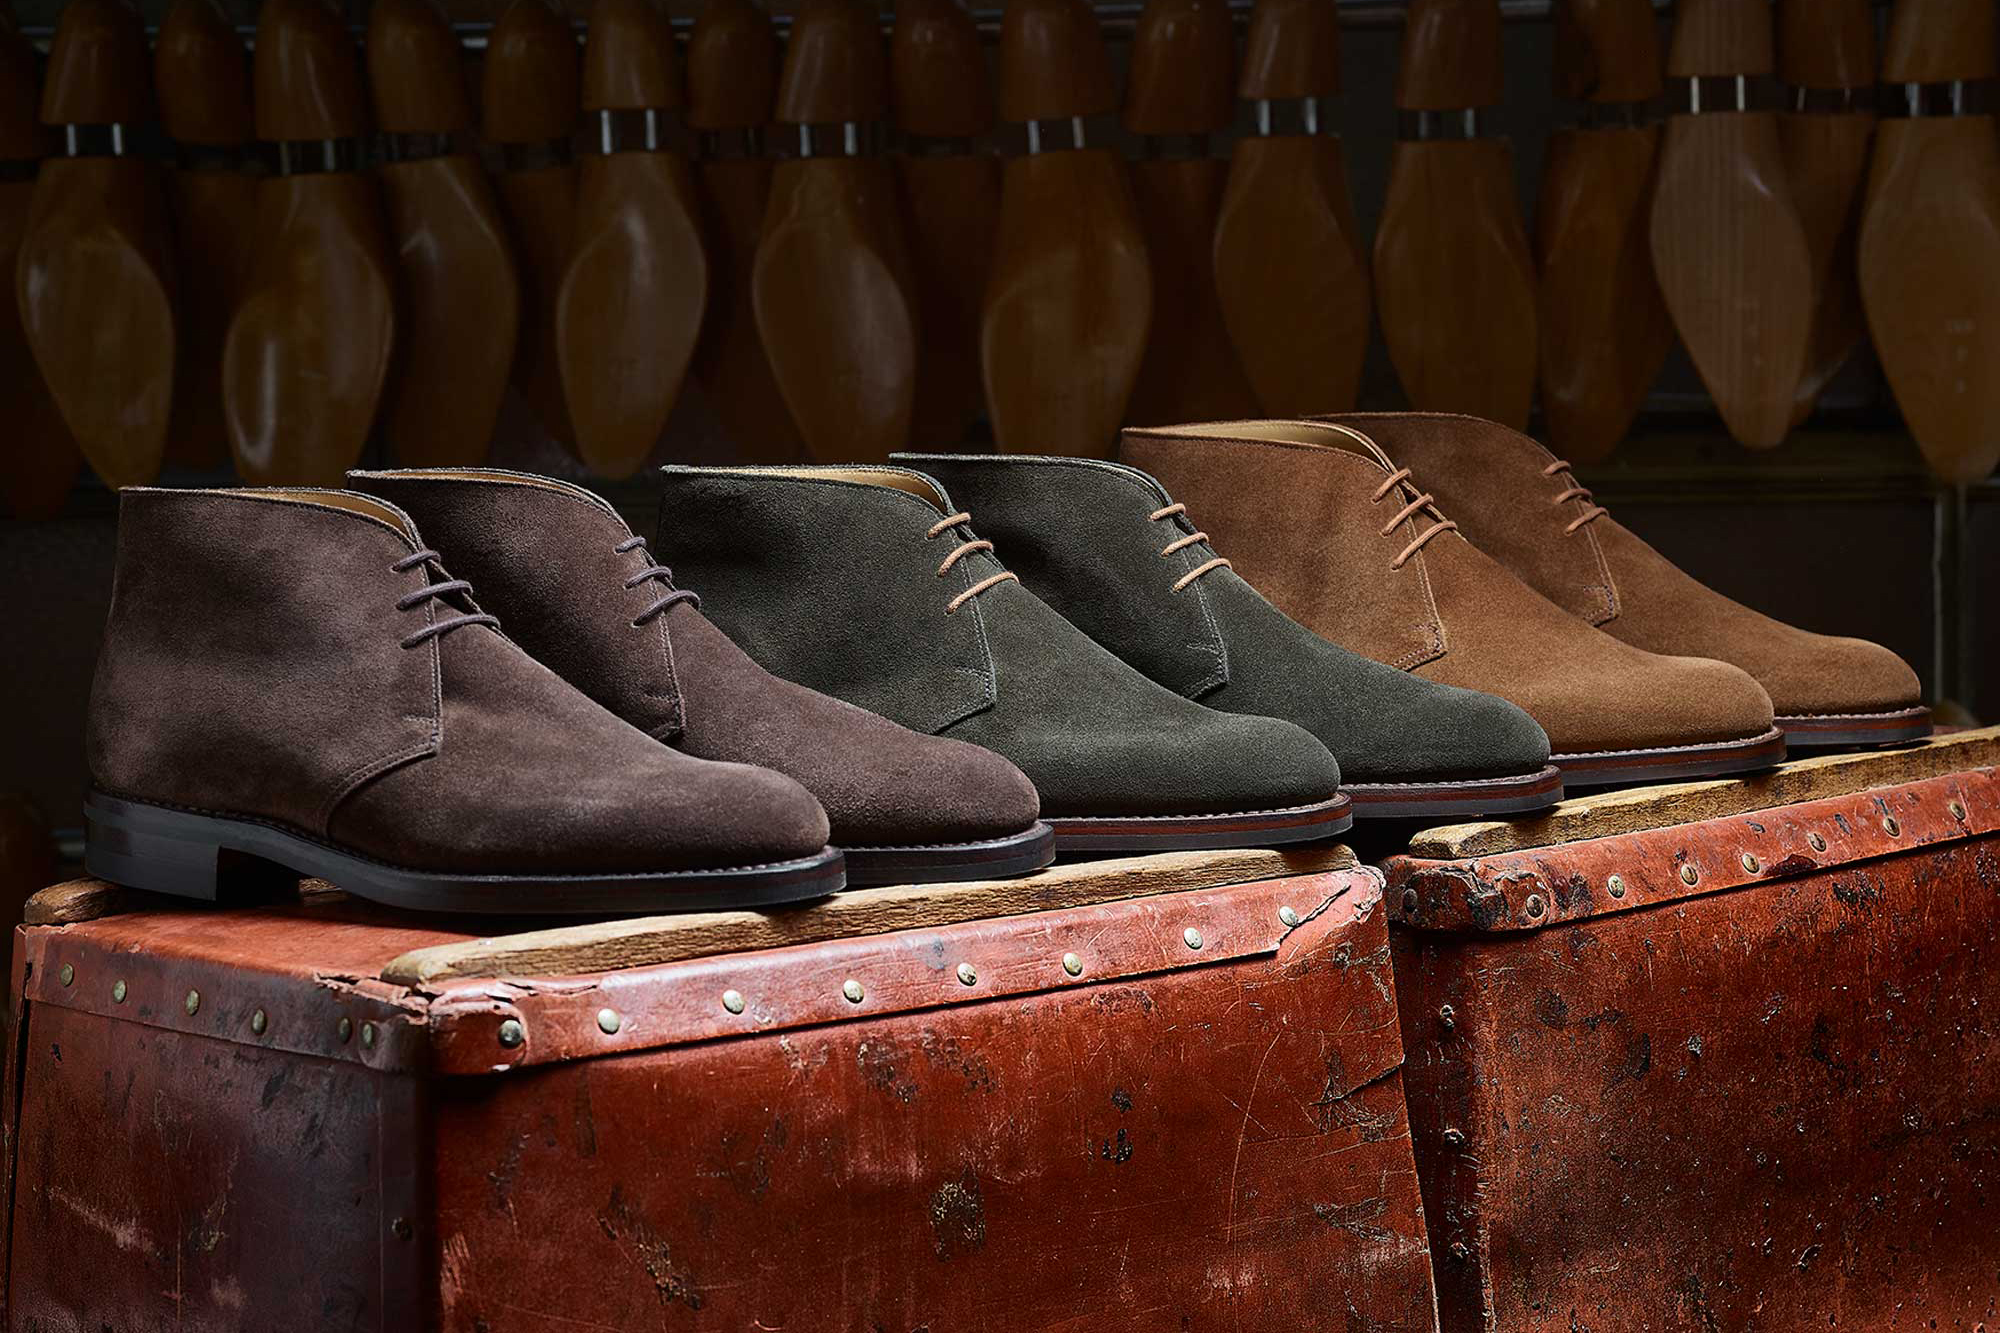 Lace up a pair of desert boots - the